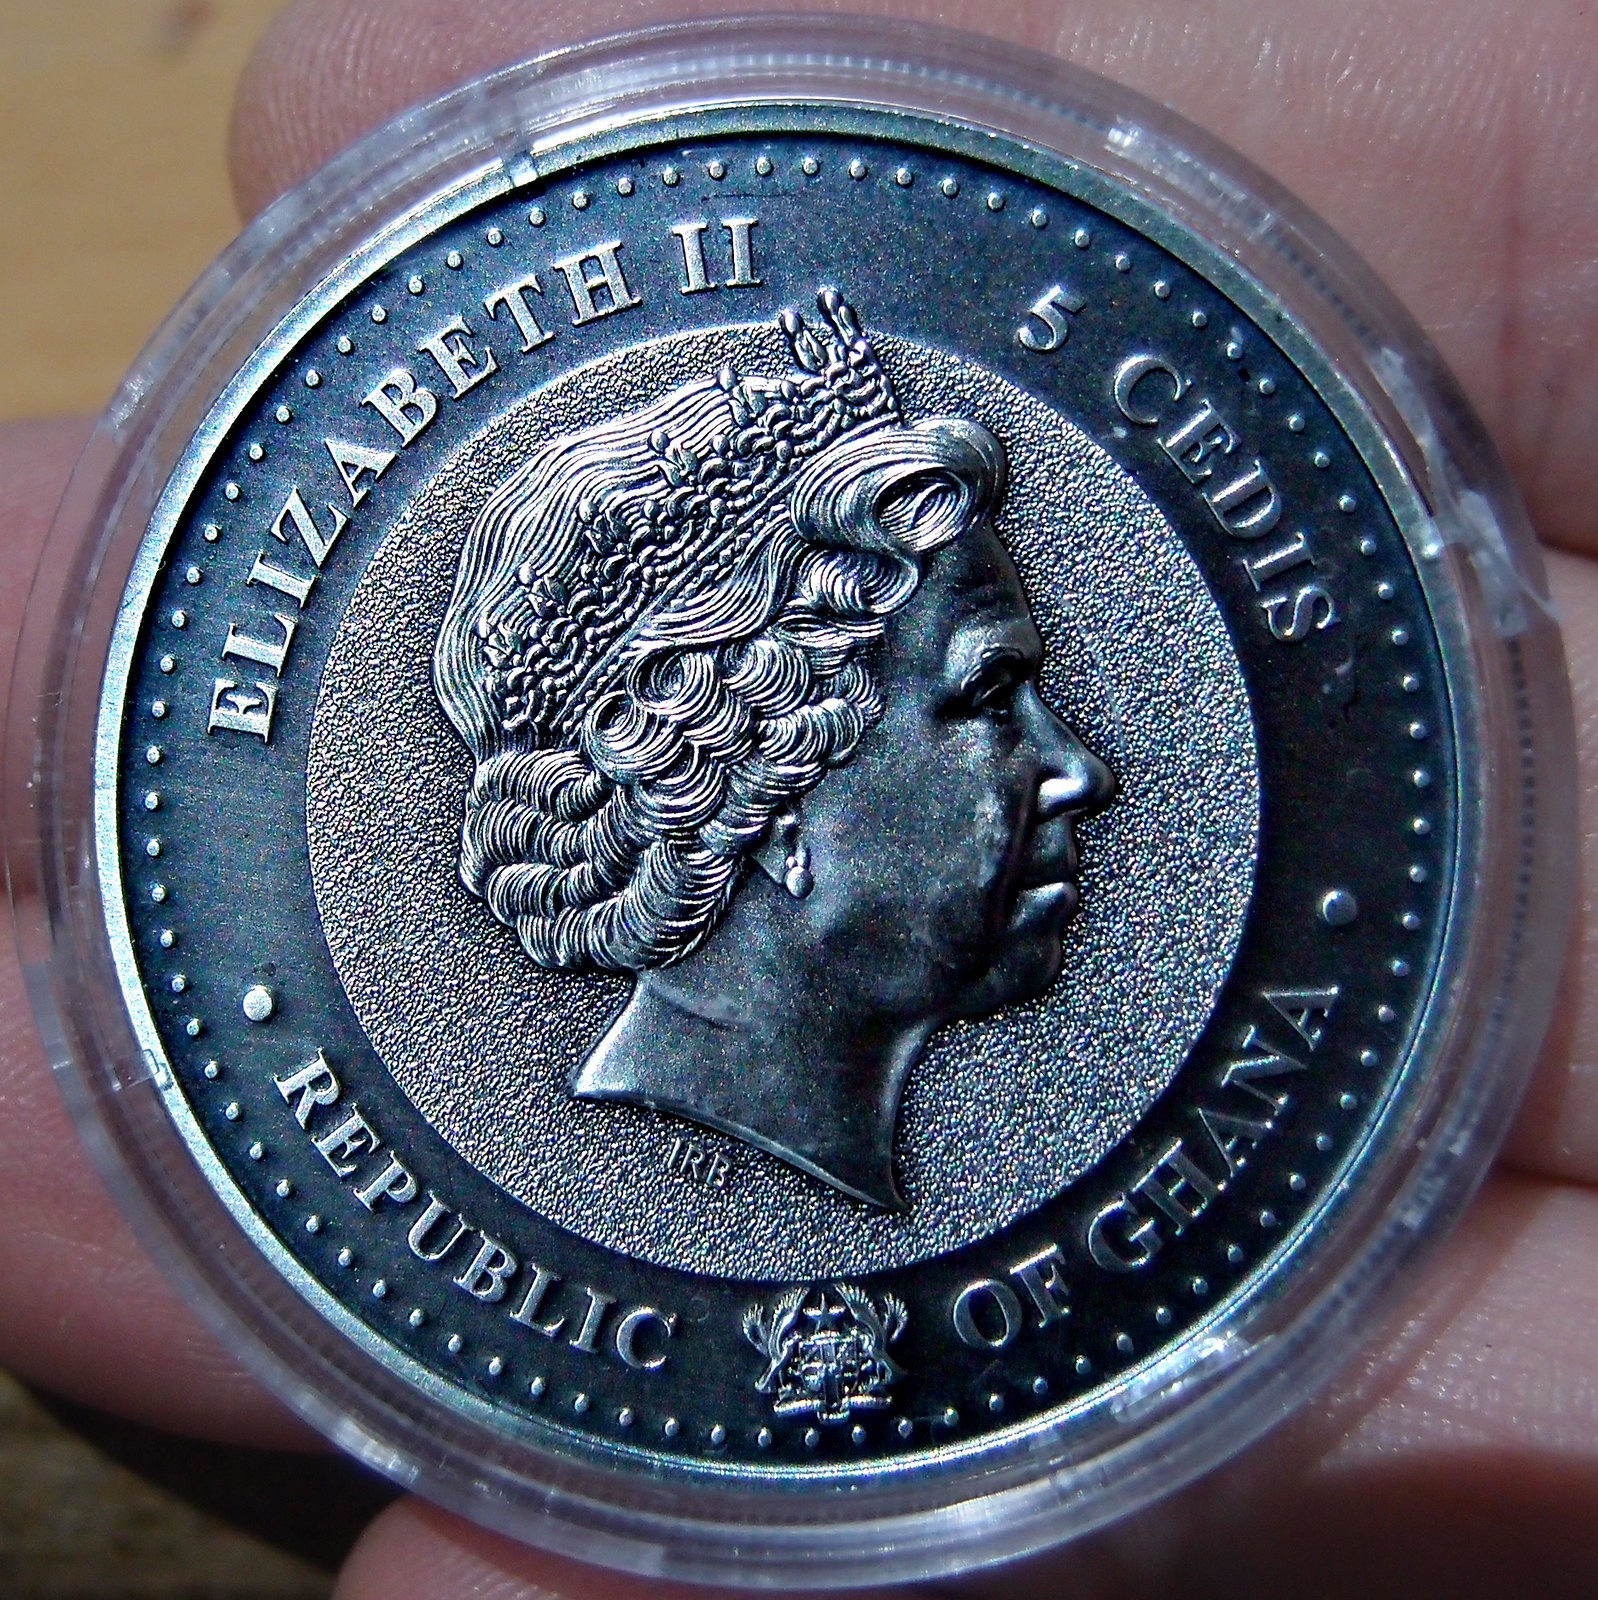 African Silver Ounce Serie  10025079854_52ccdab5c5_h